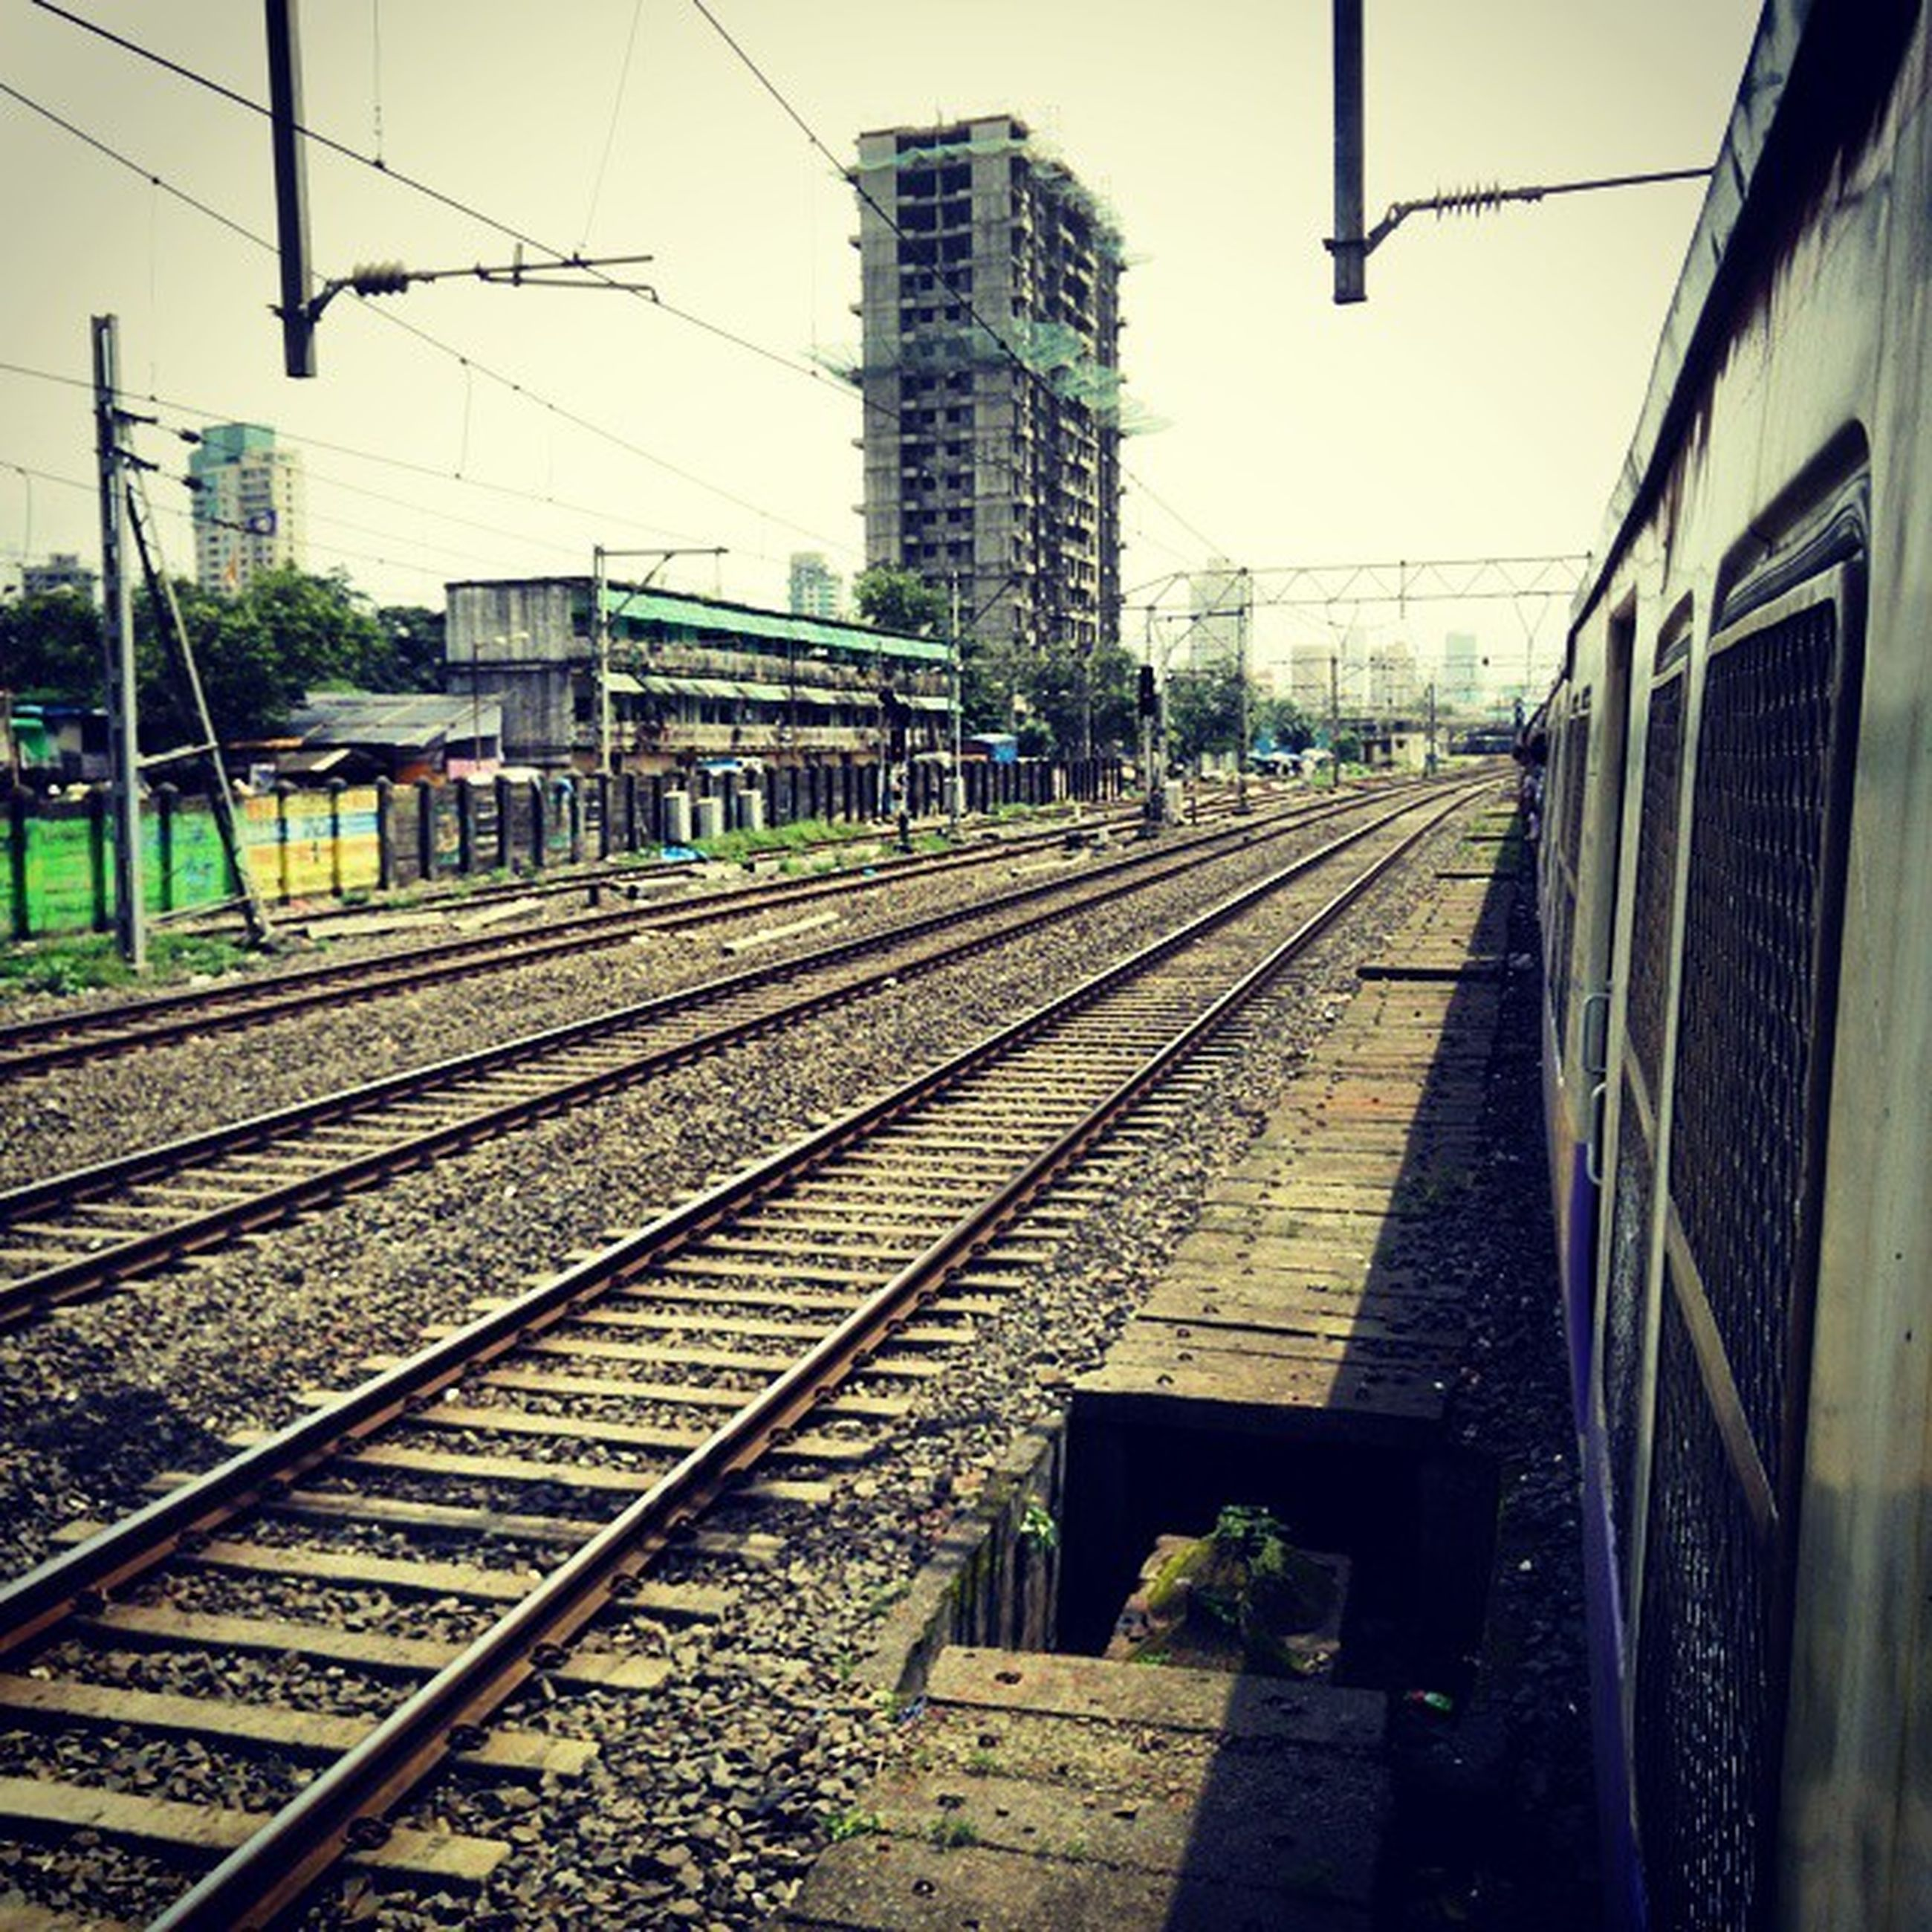 railroad track, rail transportation, public transportation, transportation, railroad station platform, railroad station, built structure, building exterior, architecture, railway track, train - vehicle, the way forward, diminishing perspective, clear sky, power line, city, vanishing point, train, day, public transport